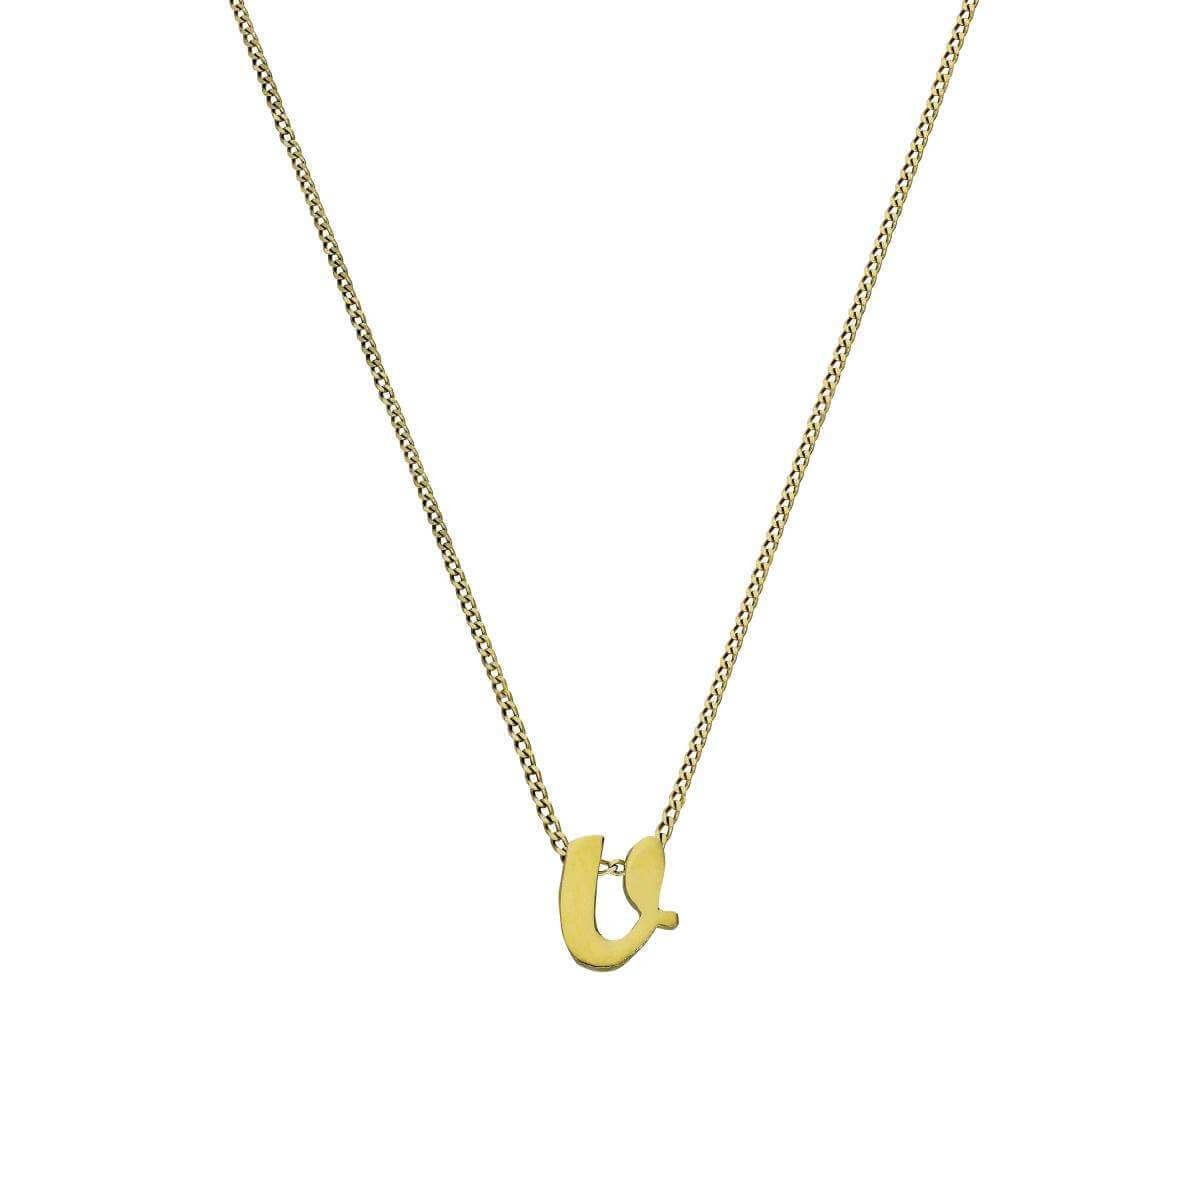 Tiny 9ct Gold Alphabet Letter U Pendant Necklace 16 - 20 Inches